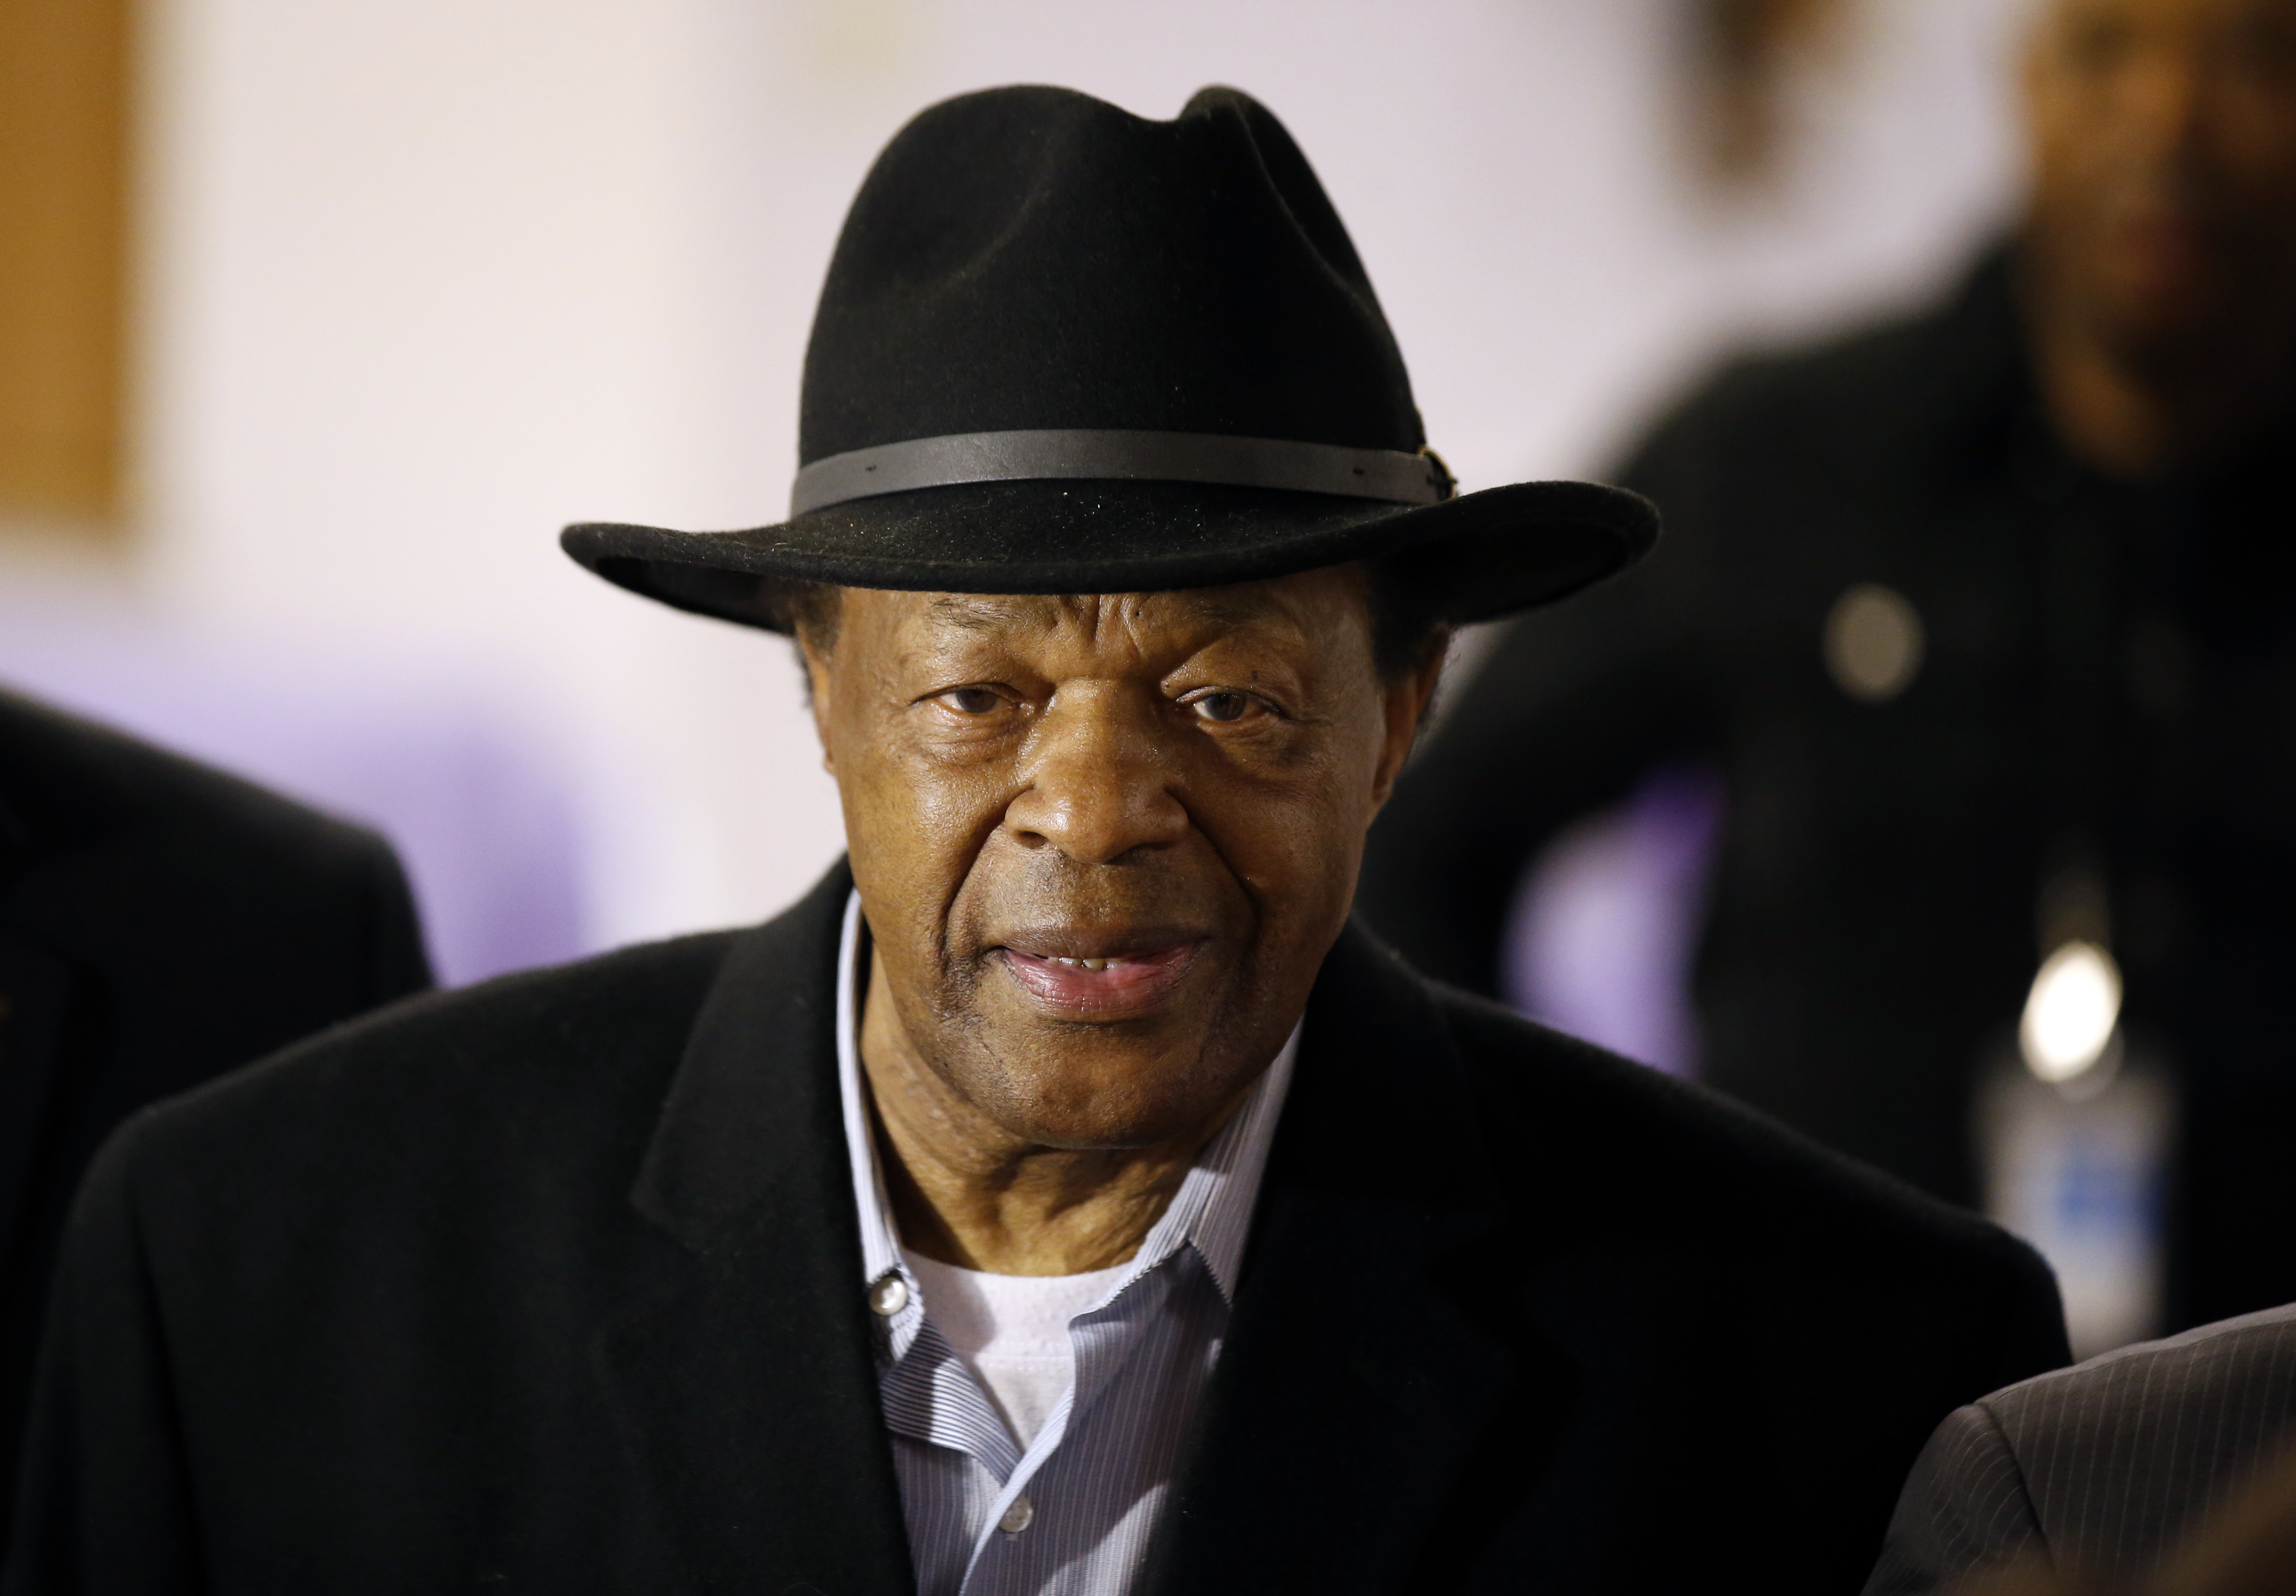 Former Mayor and current DC City Council member Marion Barry in Washington, March 19, 2014.